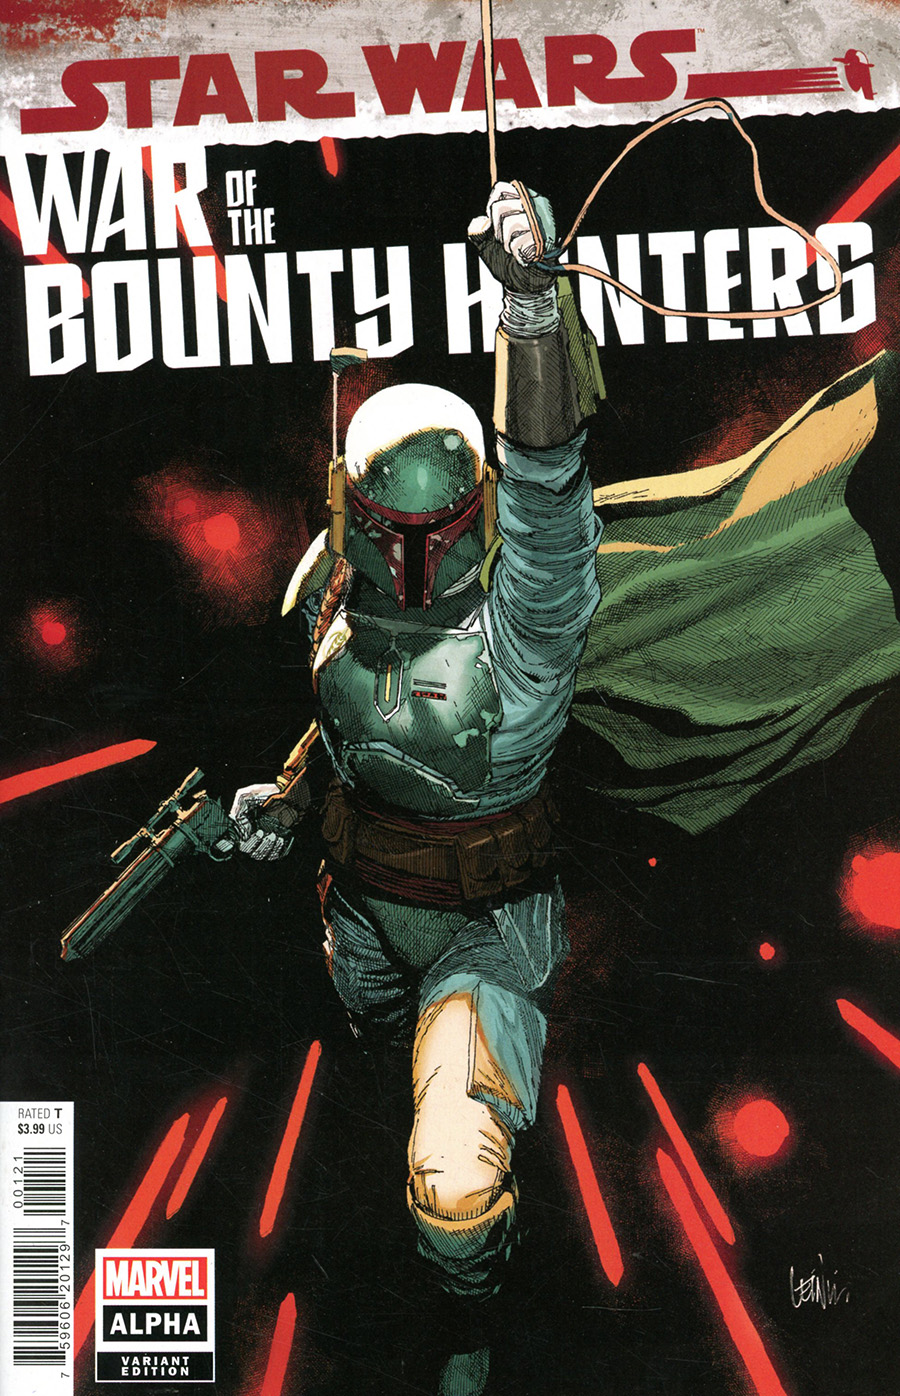 Star Wars War Of The Bounty Hunters Alpha #1 (One Shot) Cover B Variant Leinil Francis Yu Cover (Limit 1 Per Customer)